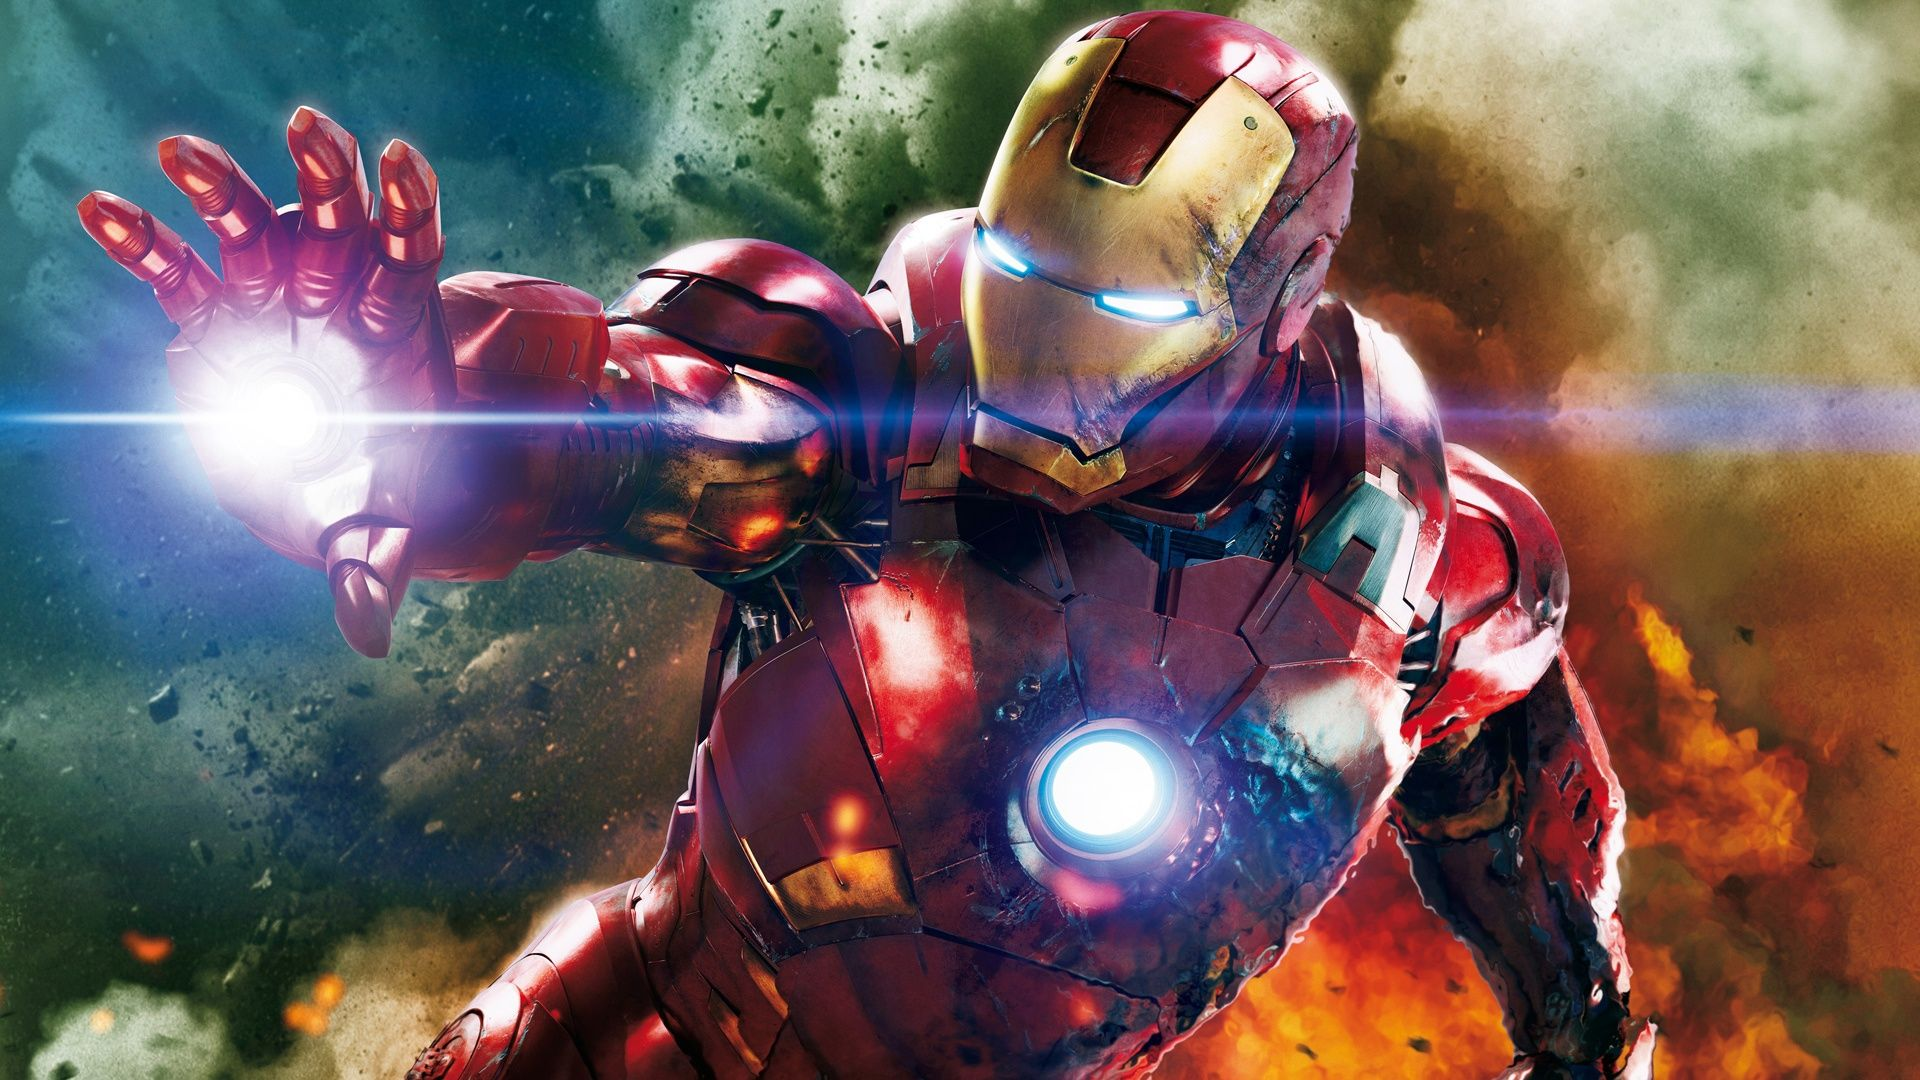 Superhero wallpaper hd wallpapersafari - Superhero iphone wallpaper hd ...